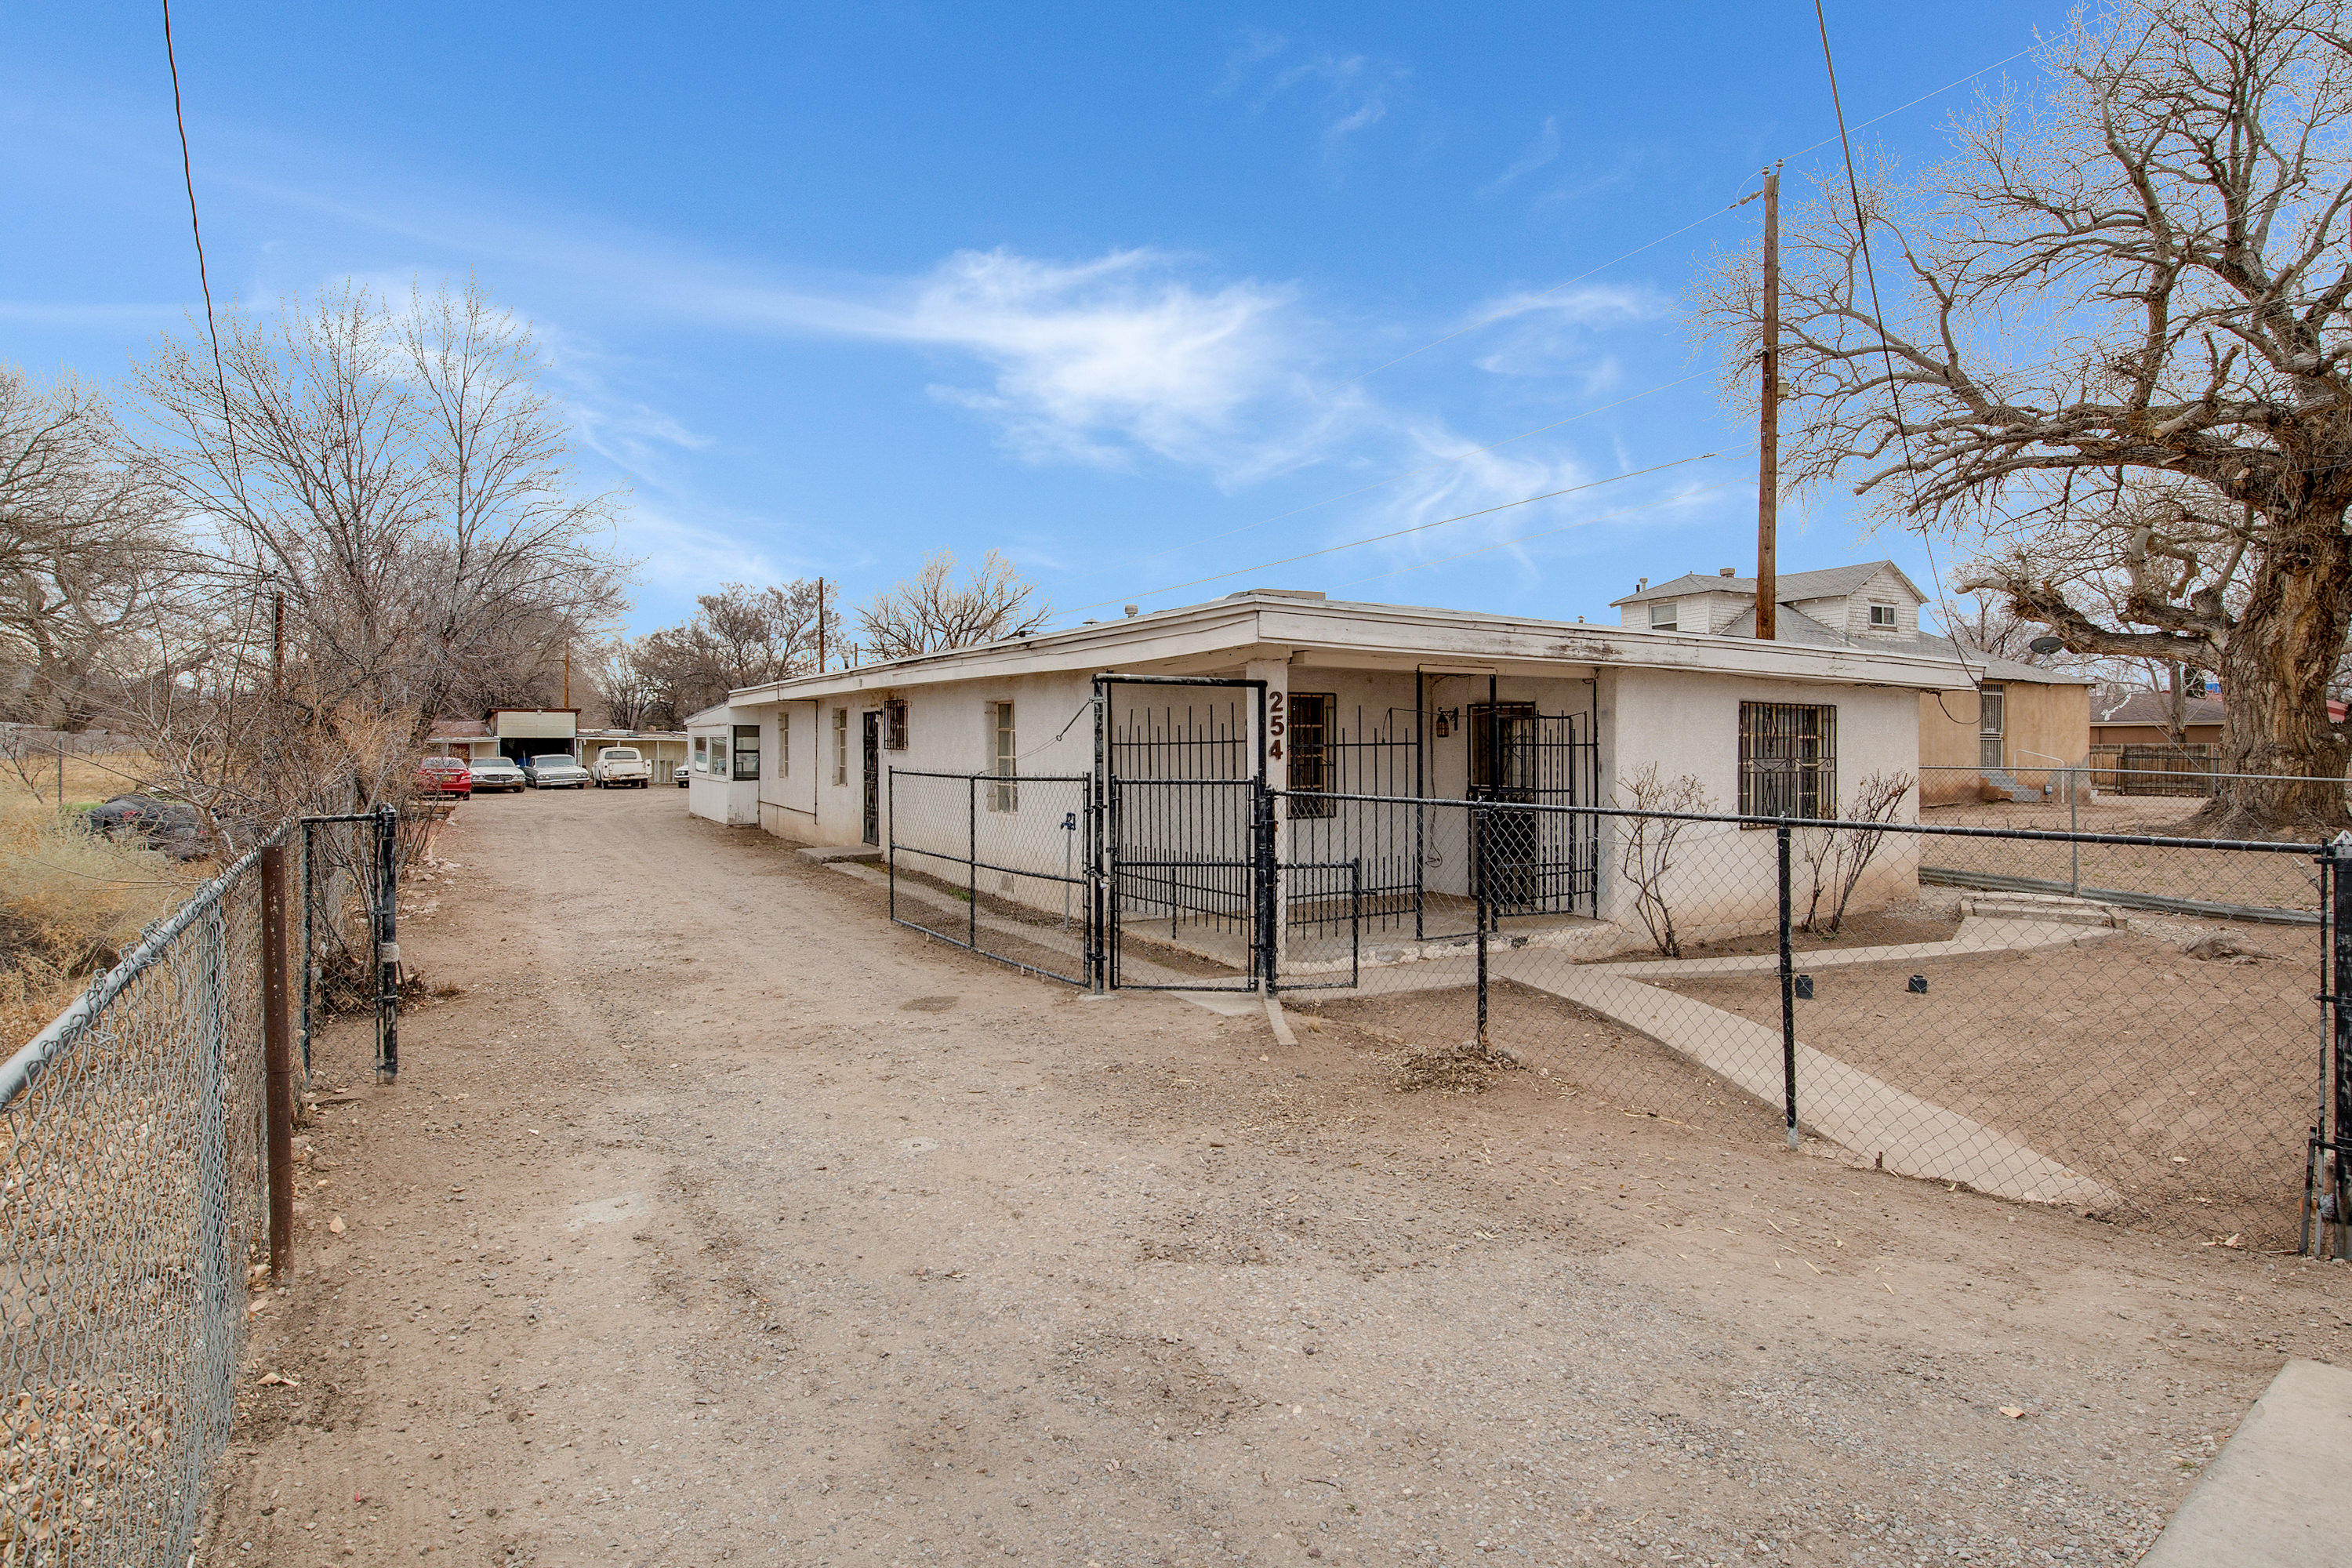 3 bed 2 bath house located in SW ABQ. utilities on / livable, This home needs work and is priced accordingly, Ideal for flippers, Investors, or first time homebuyers, Lots of potential,  nice sized lot with plenty of storage and parking. This home is being sols As Is - Seller will not make any repairs, buyer to pay for any/all inspections & appraisal if required. buyers to verify Sqft.